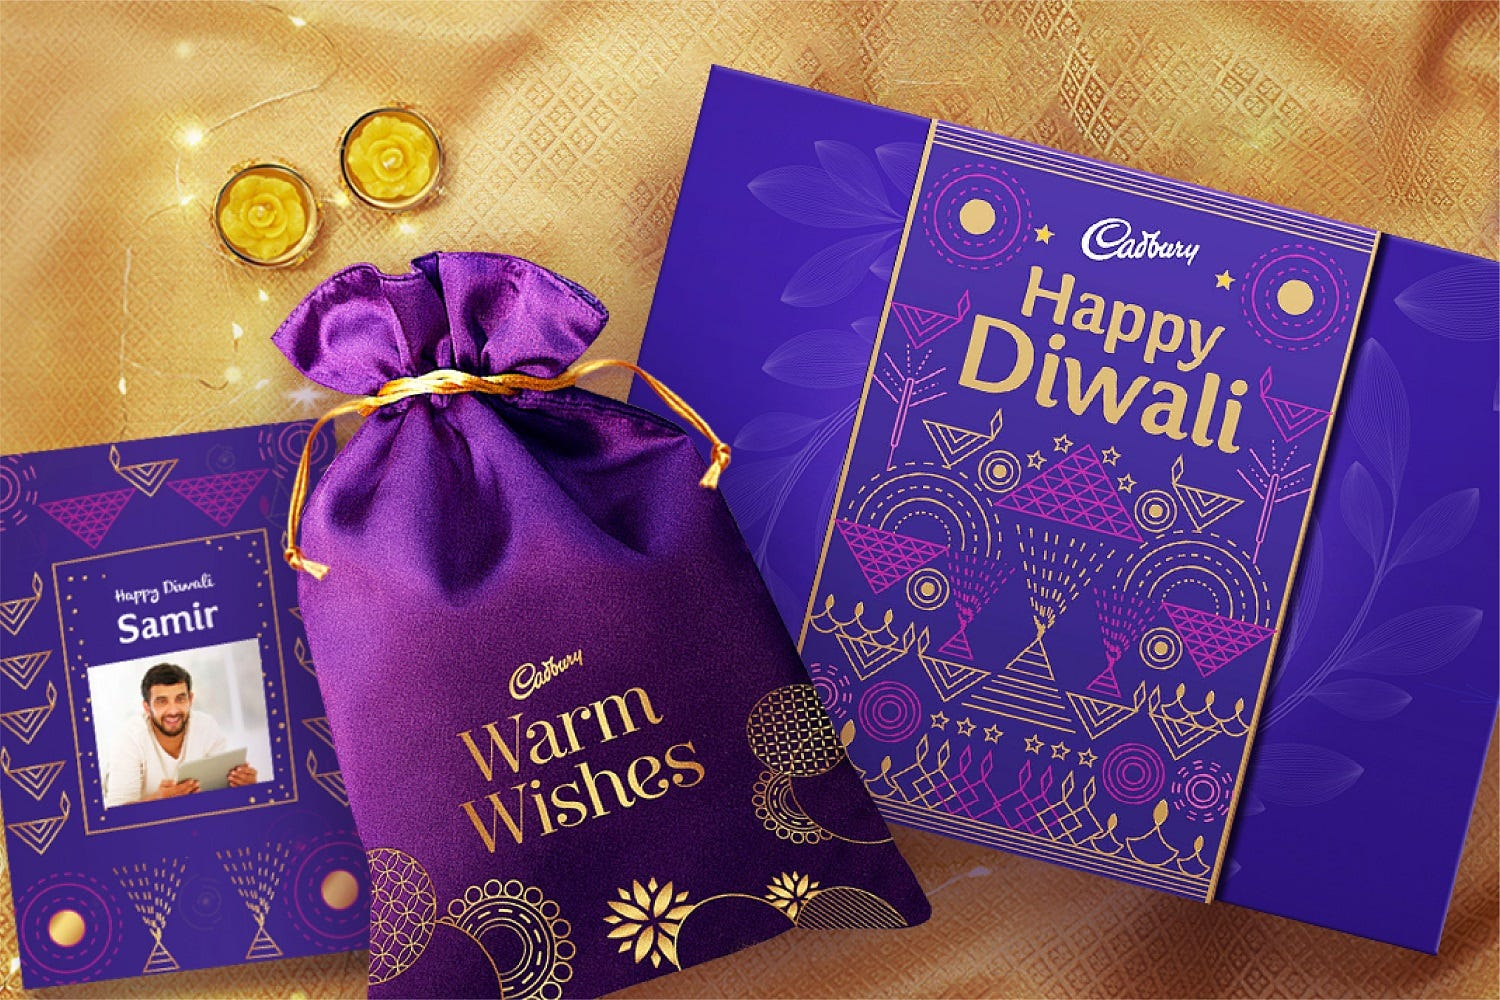 Diwali Gifts for Your Boyfriend: Make it Sweet & Special